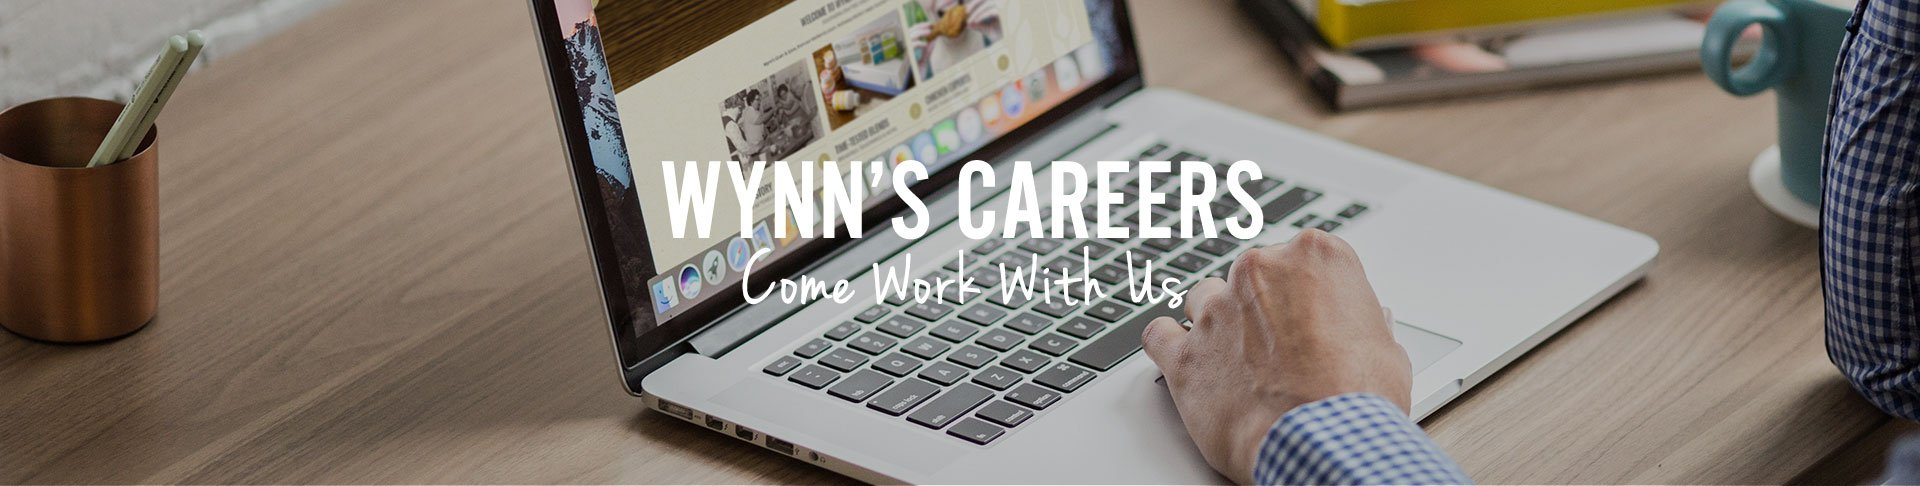 Wynn's Grain and Spice - Careers